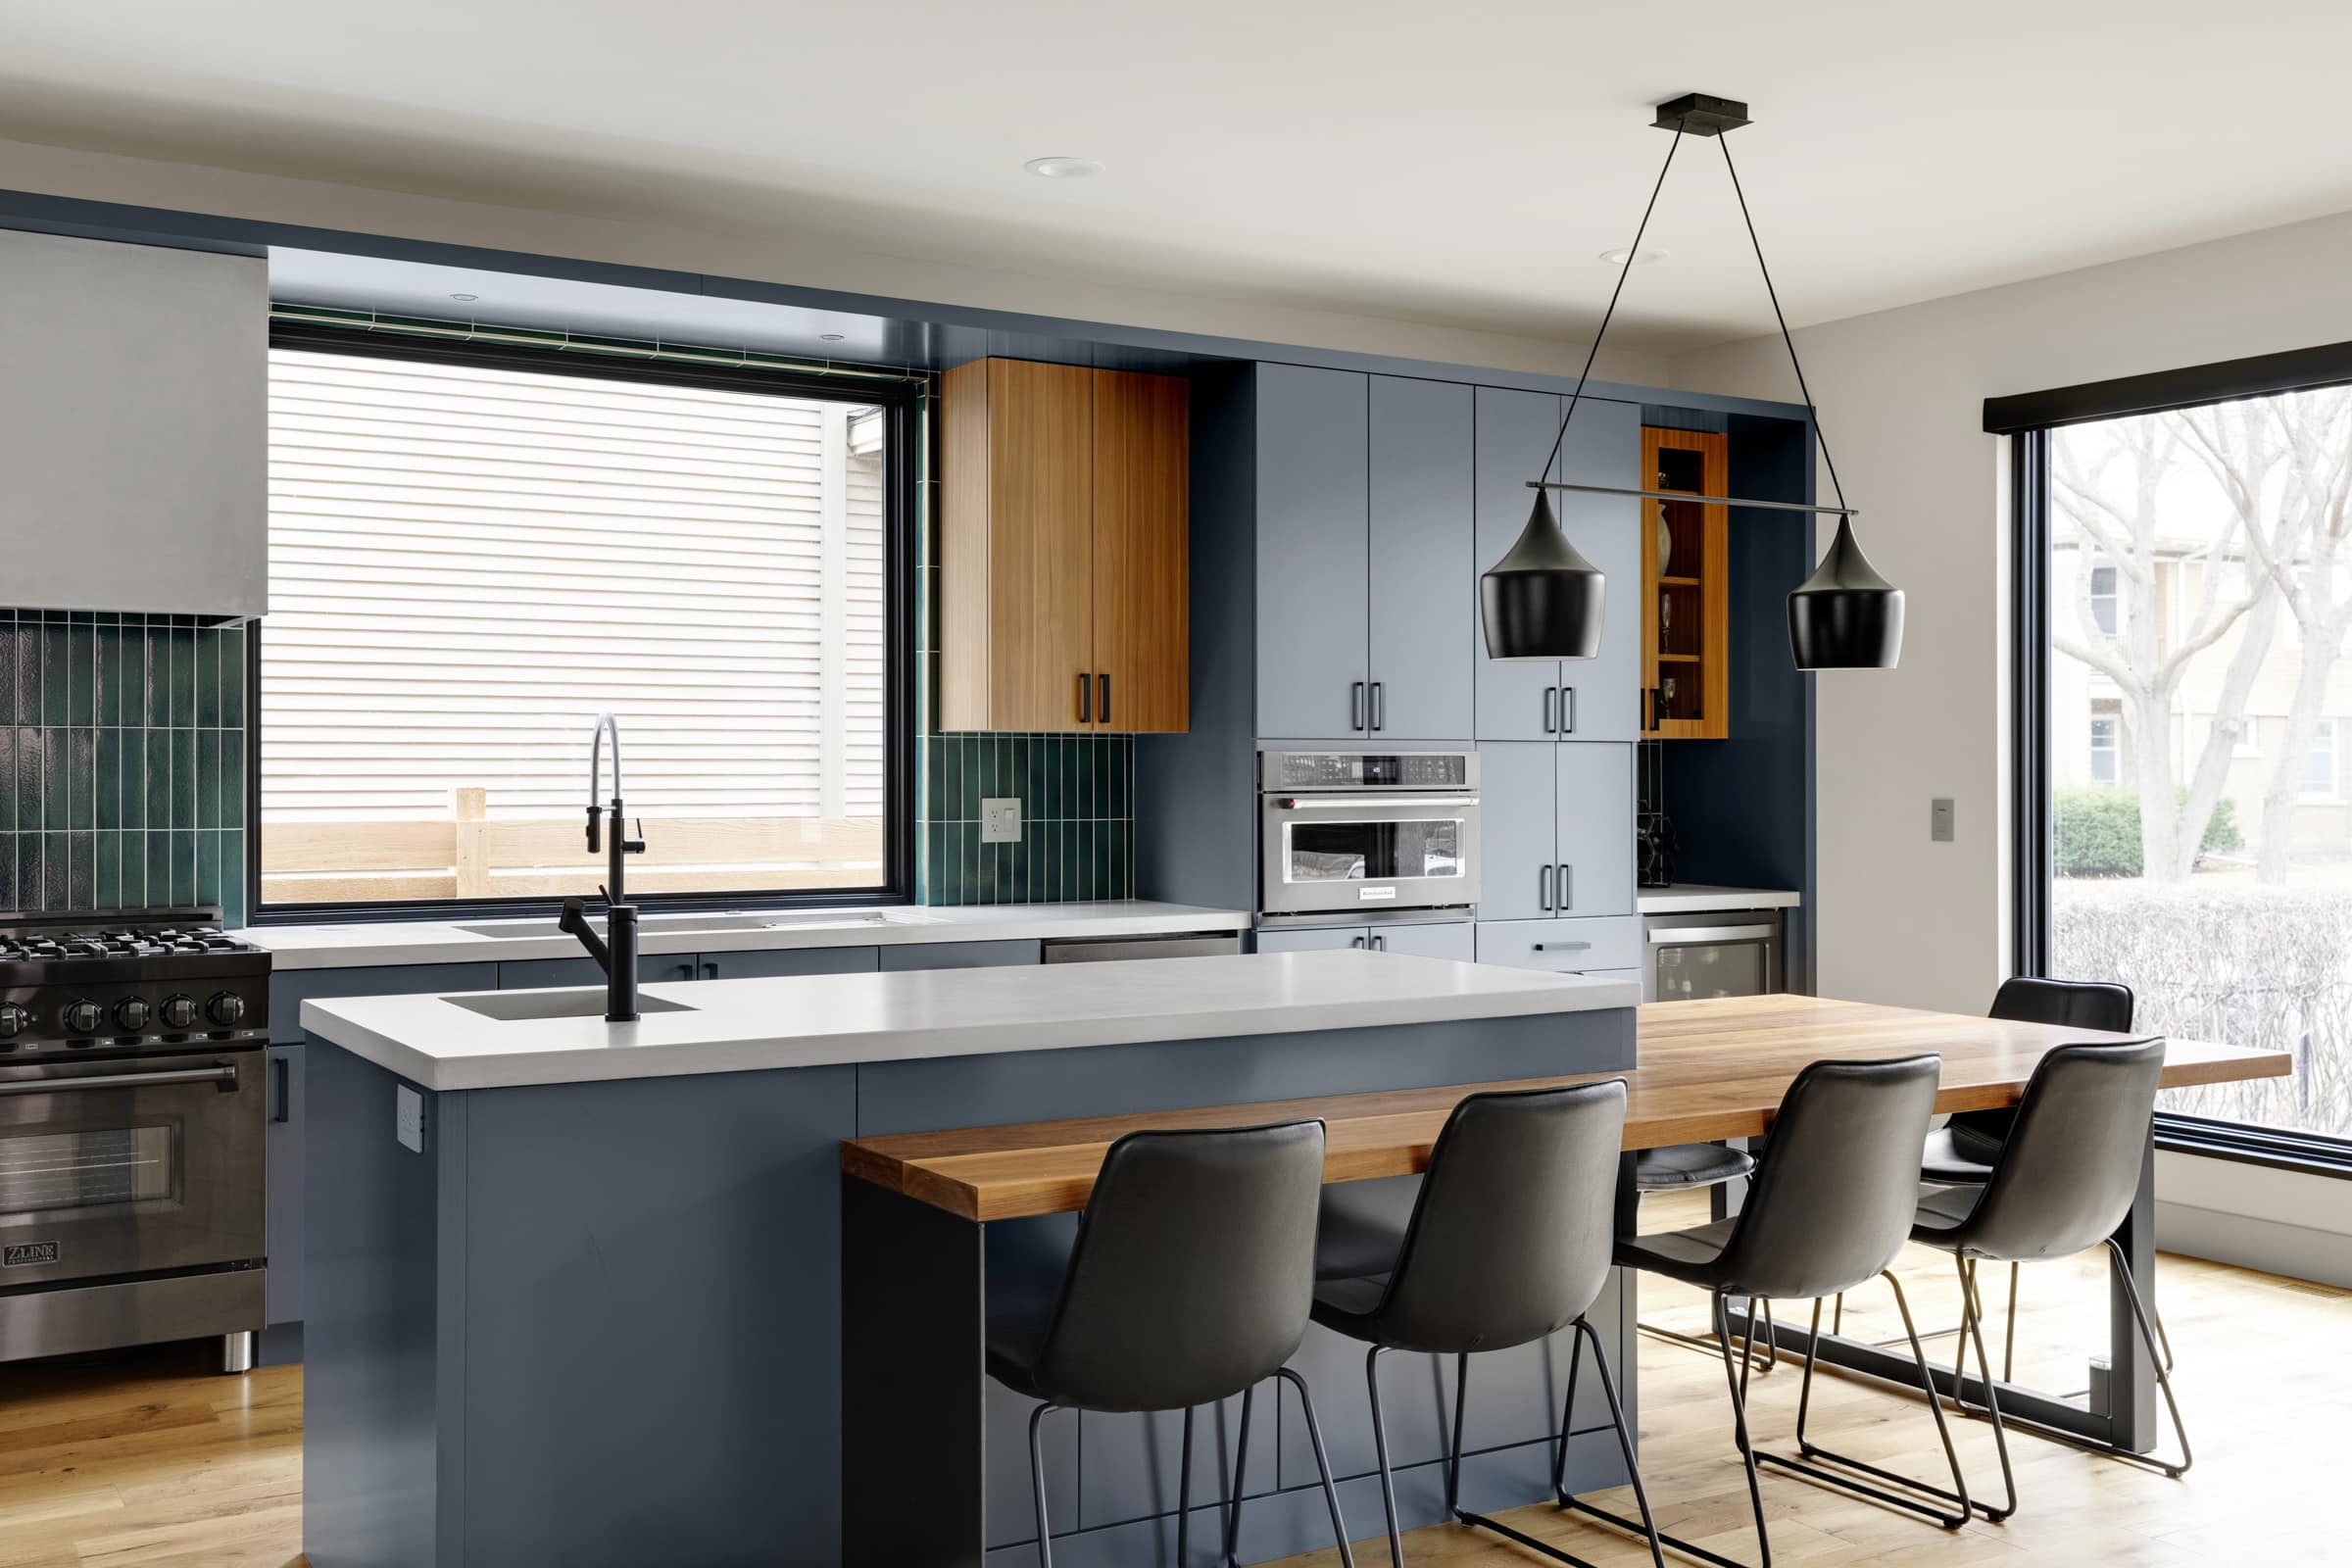 Kitchen, barstools and beautiful modern home